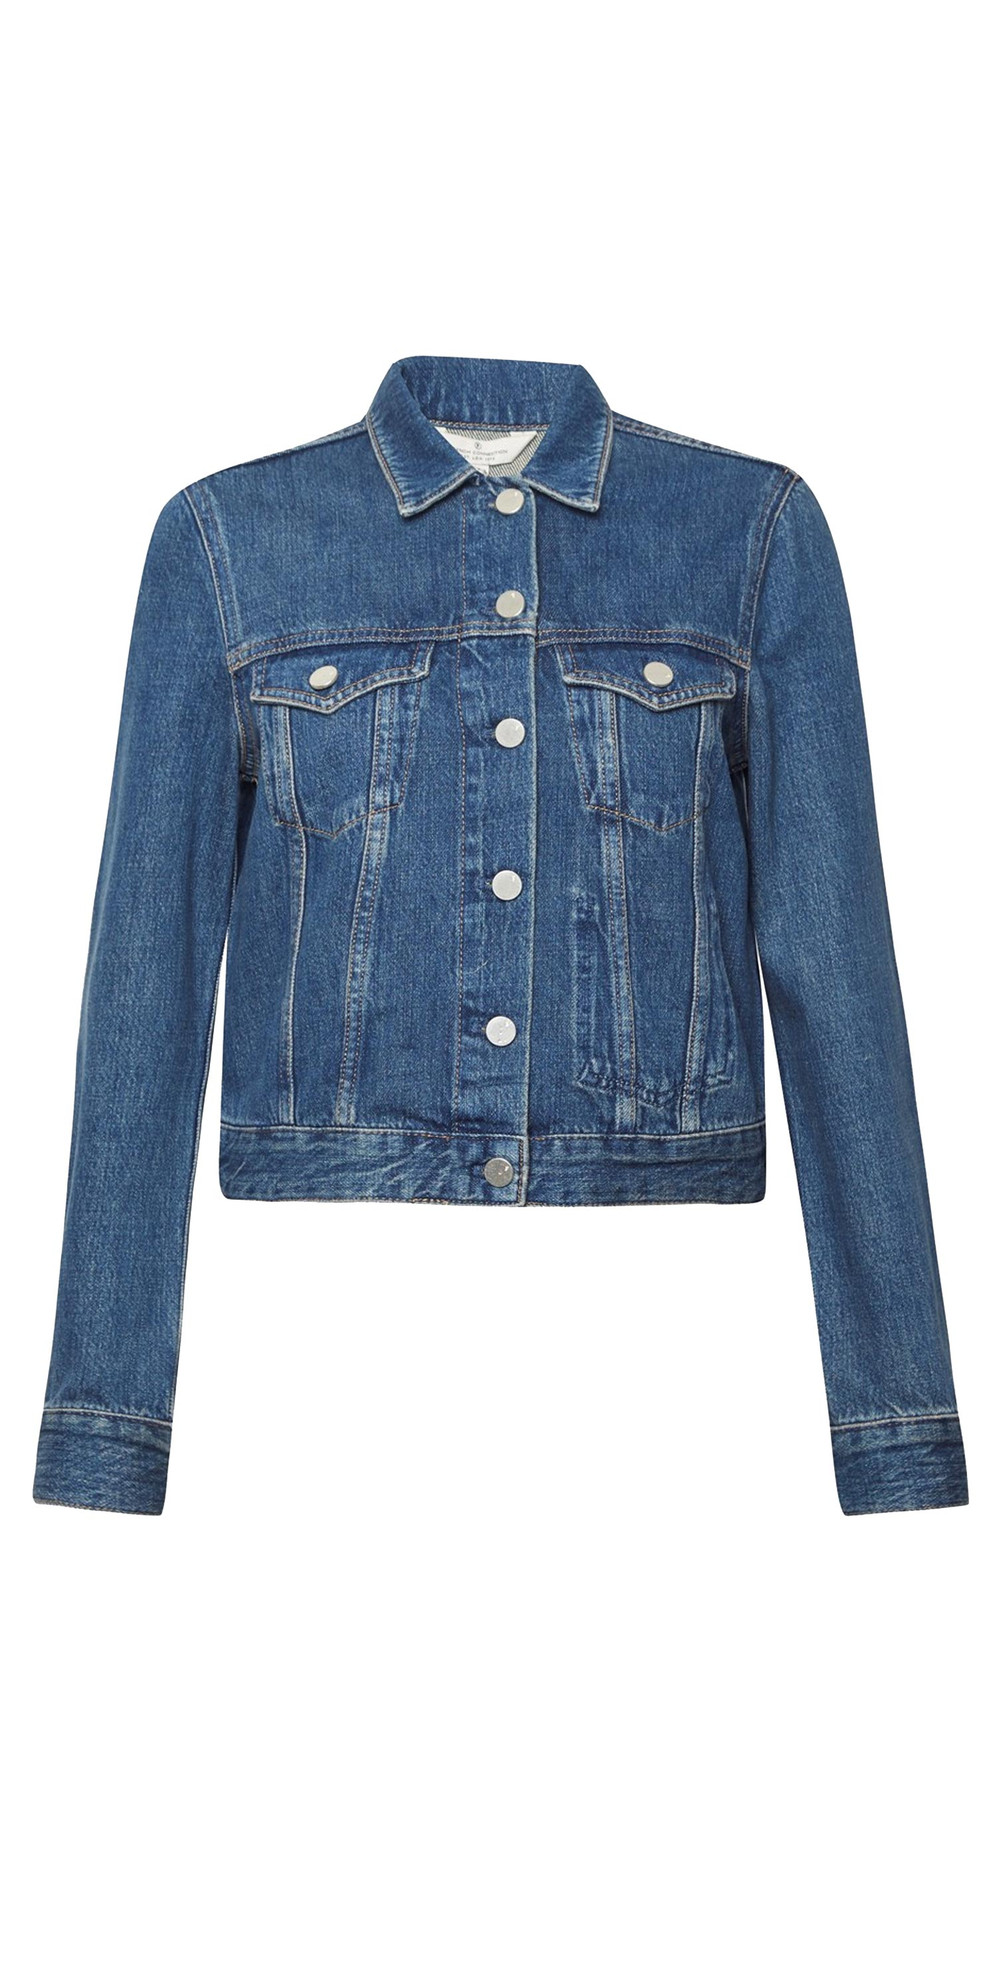 Western Denim Jacket main image